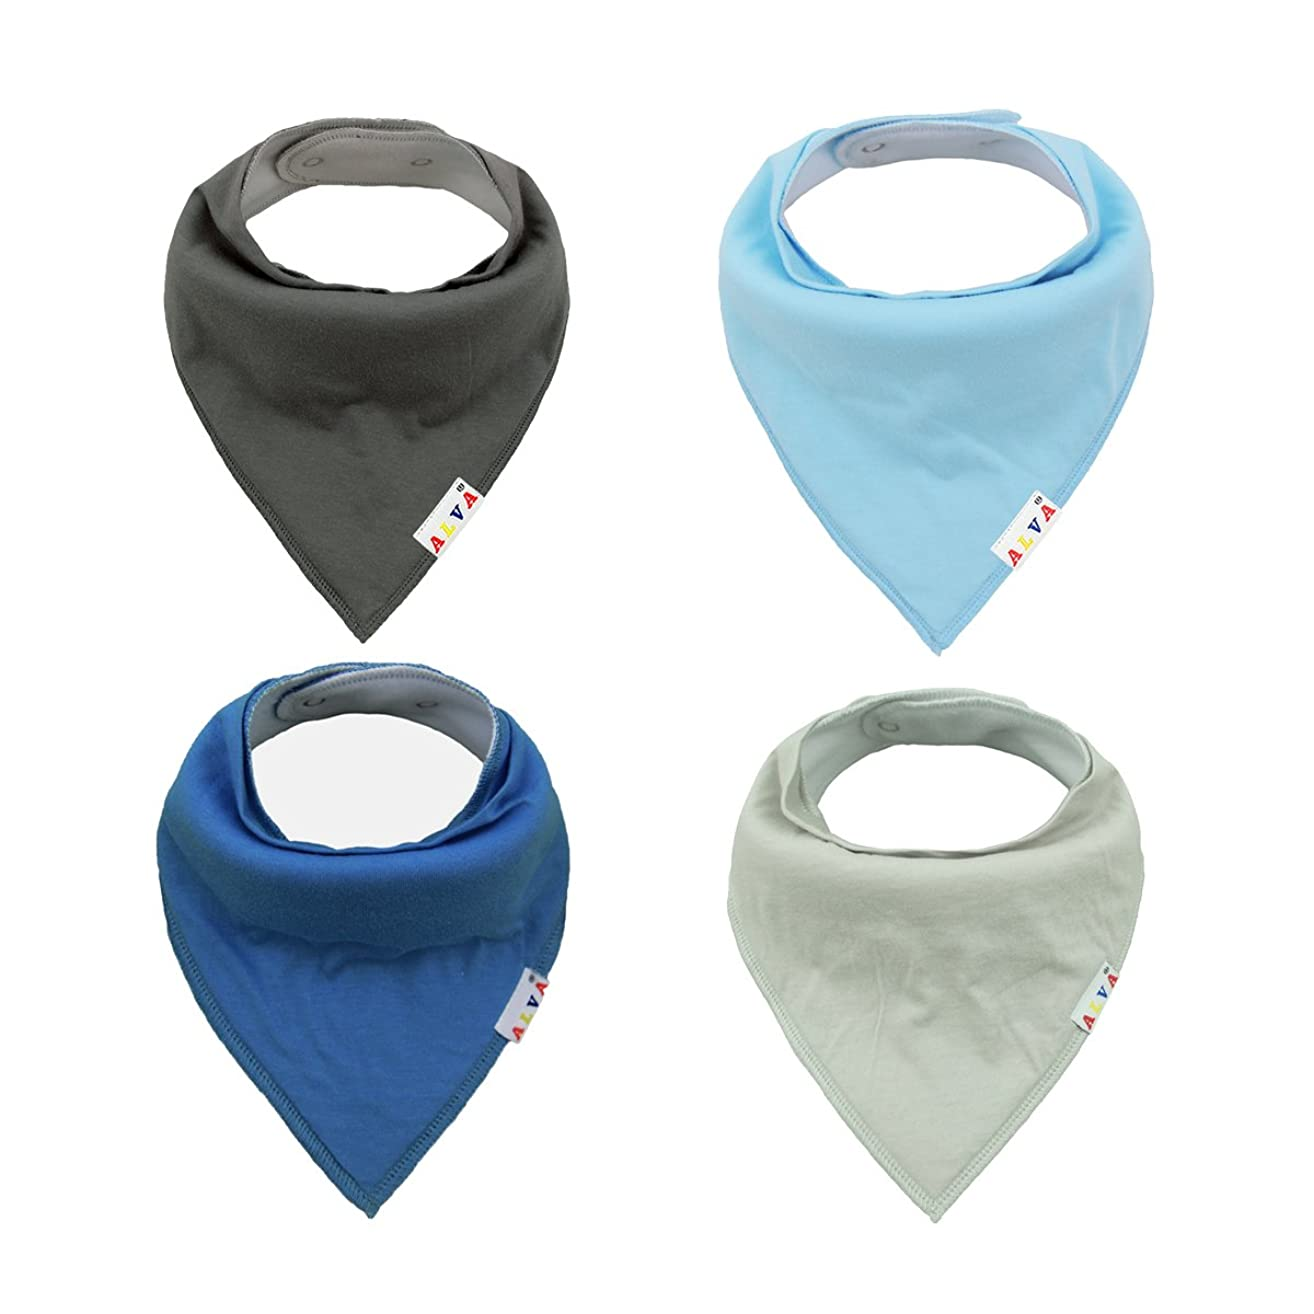 ALVABABY Bandana Bibs for Boys and Girls 4 Pack of Super Absorbent Baby Gift Sets KSD03